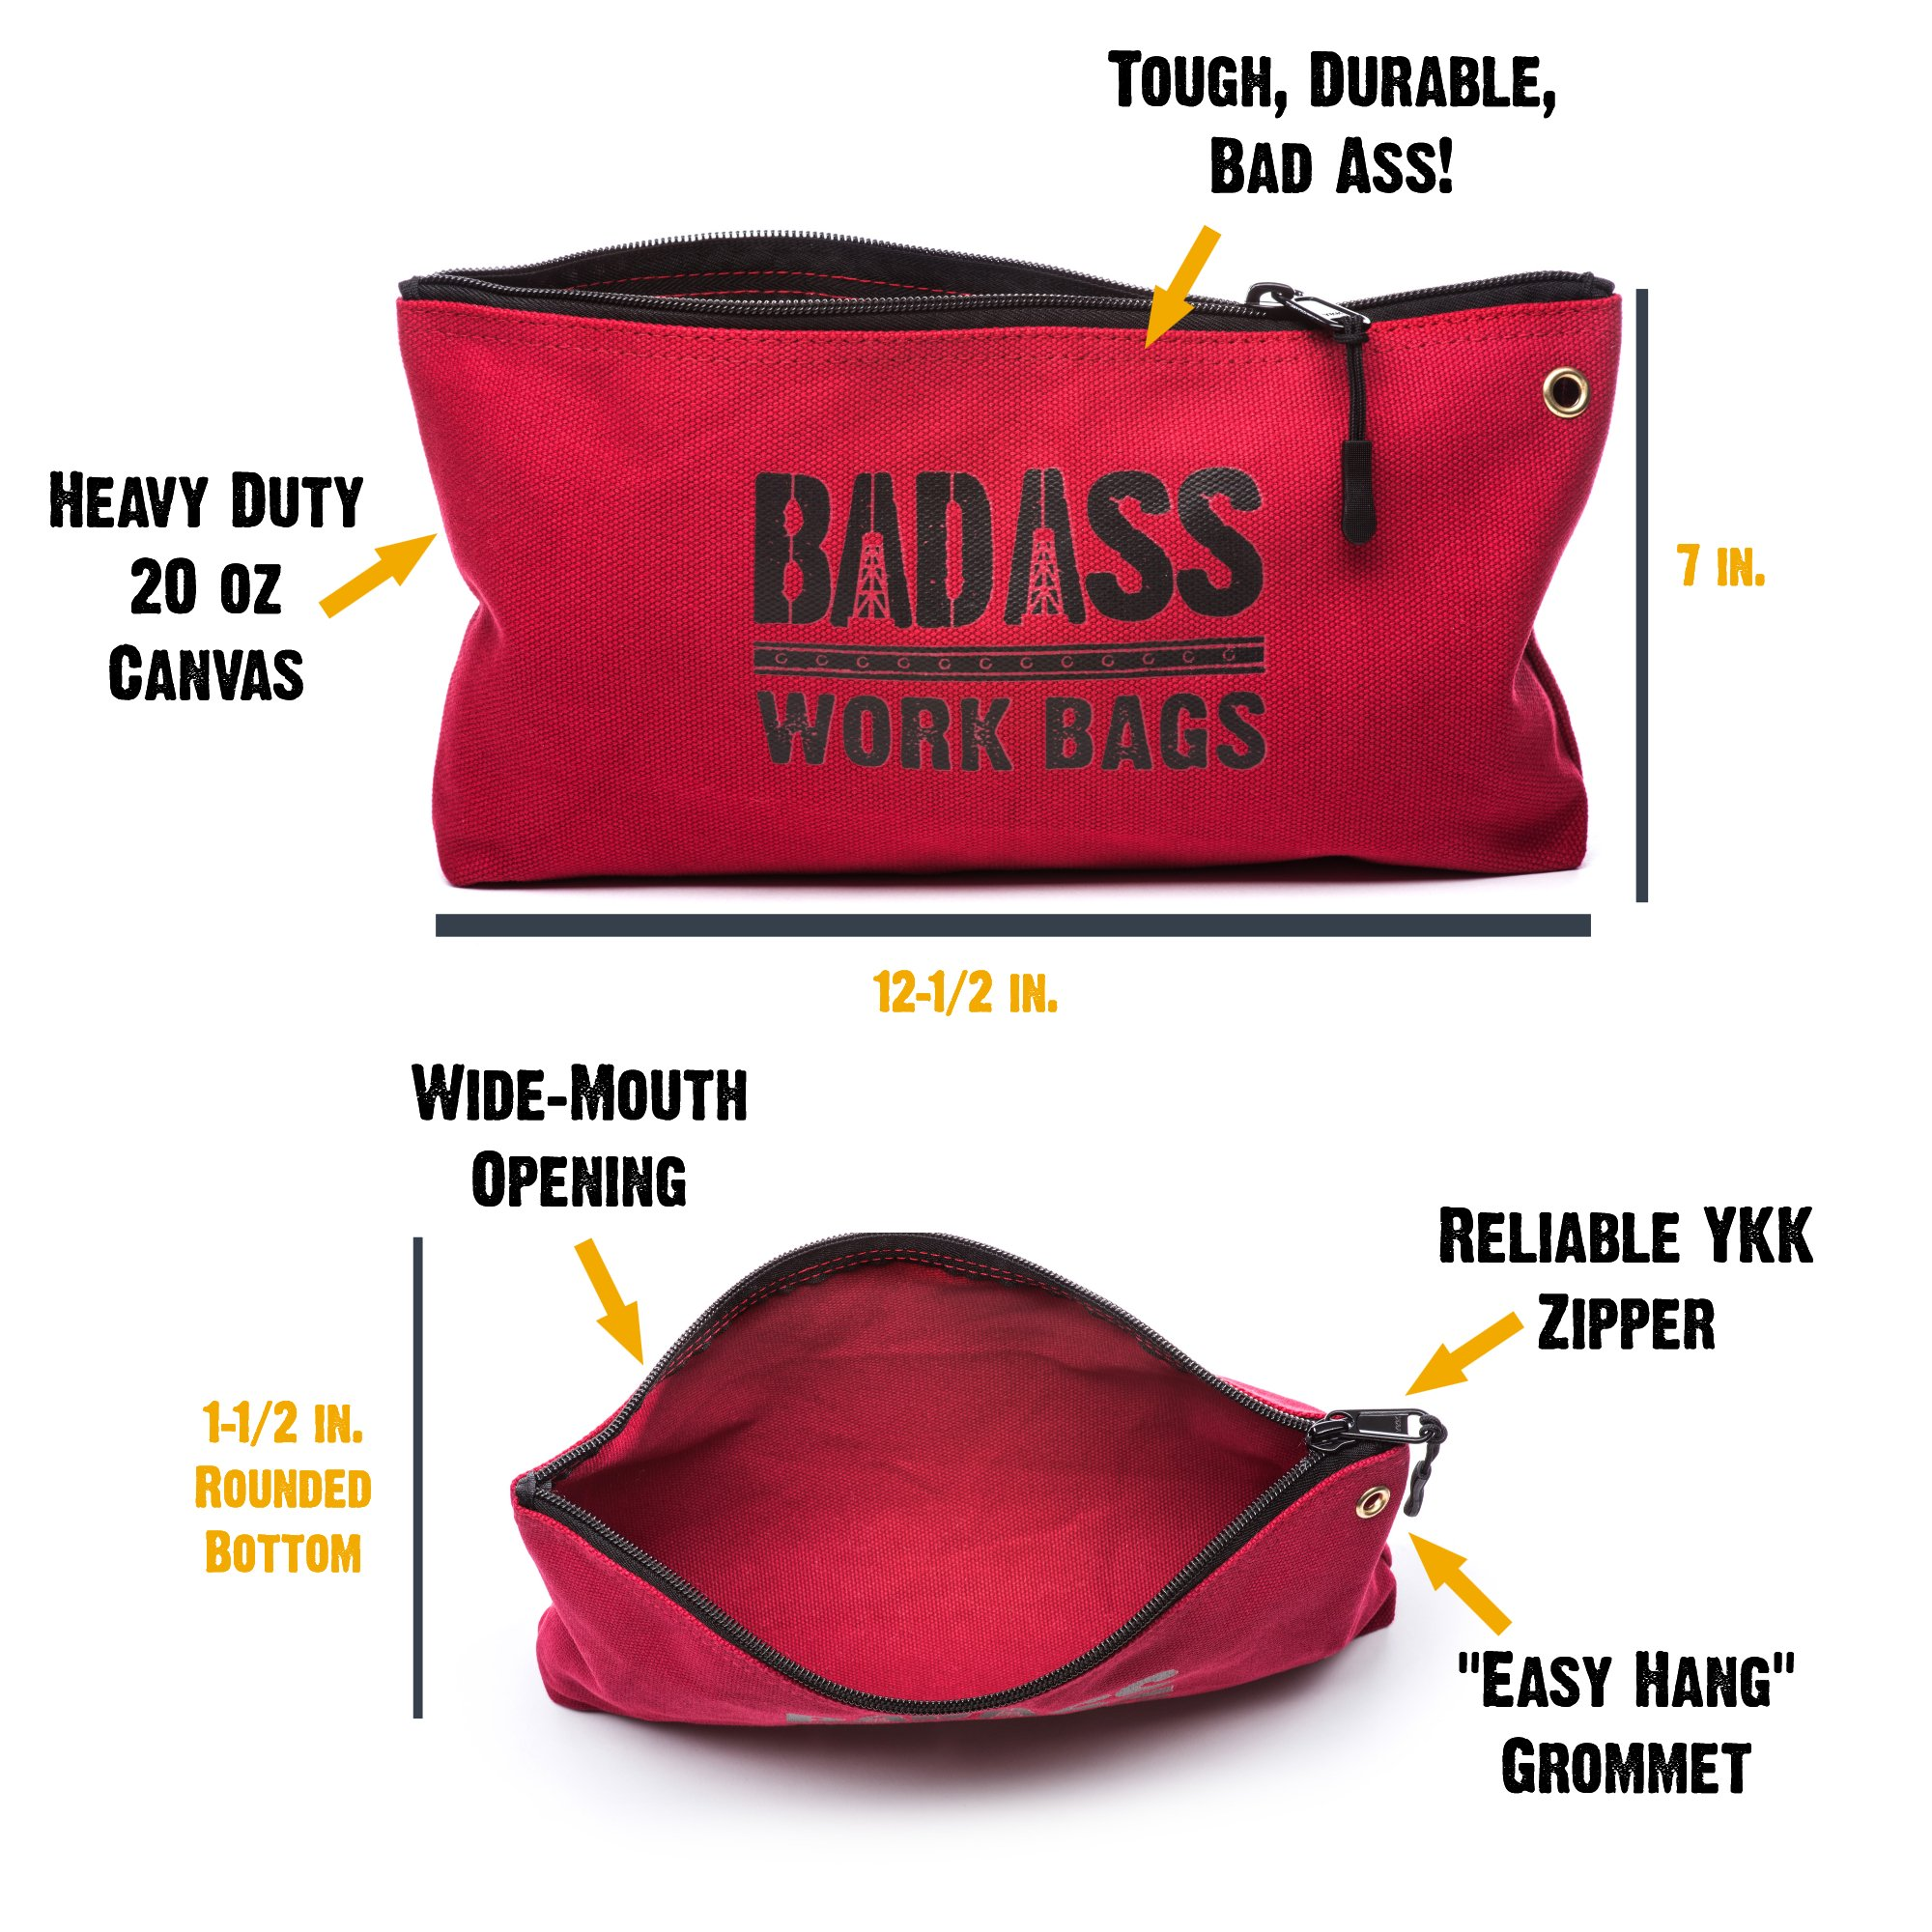 Bad Ass Work Gear   4-Pack of Heavy Duty 20 oz. Canvas Zipper Tool Bags in 4 colors   Toughest Utility Bag by Bad Ass Work Gear (Image #3)